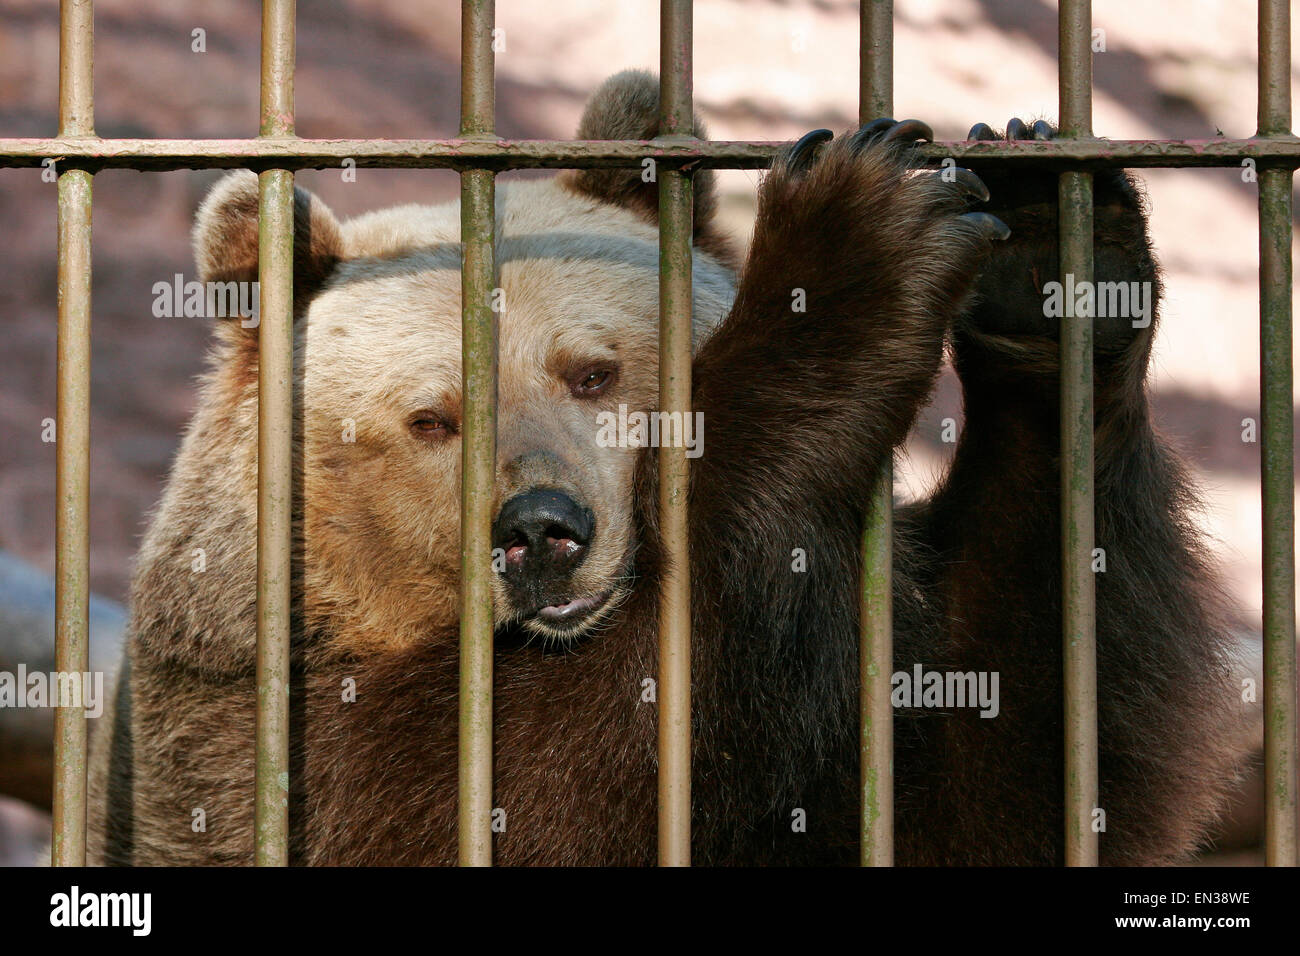 European brown bear (Ursus arctos) in the cage behind bars, captive, Thuringia, Germany - Stock Image